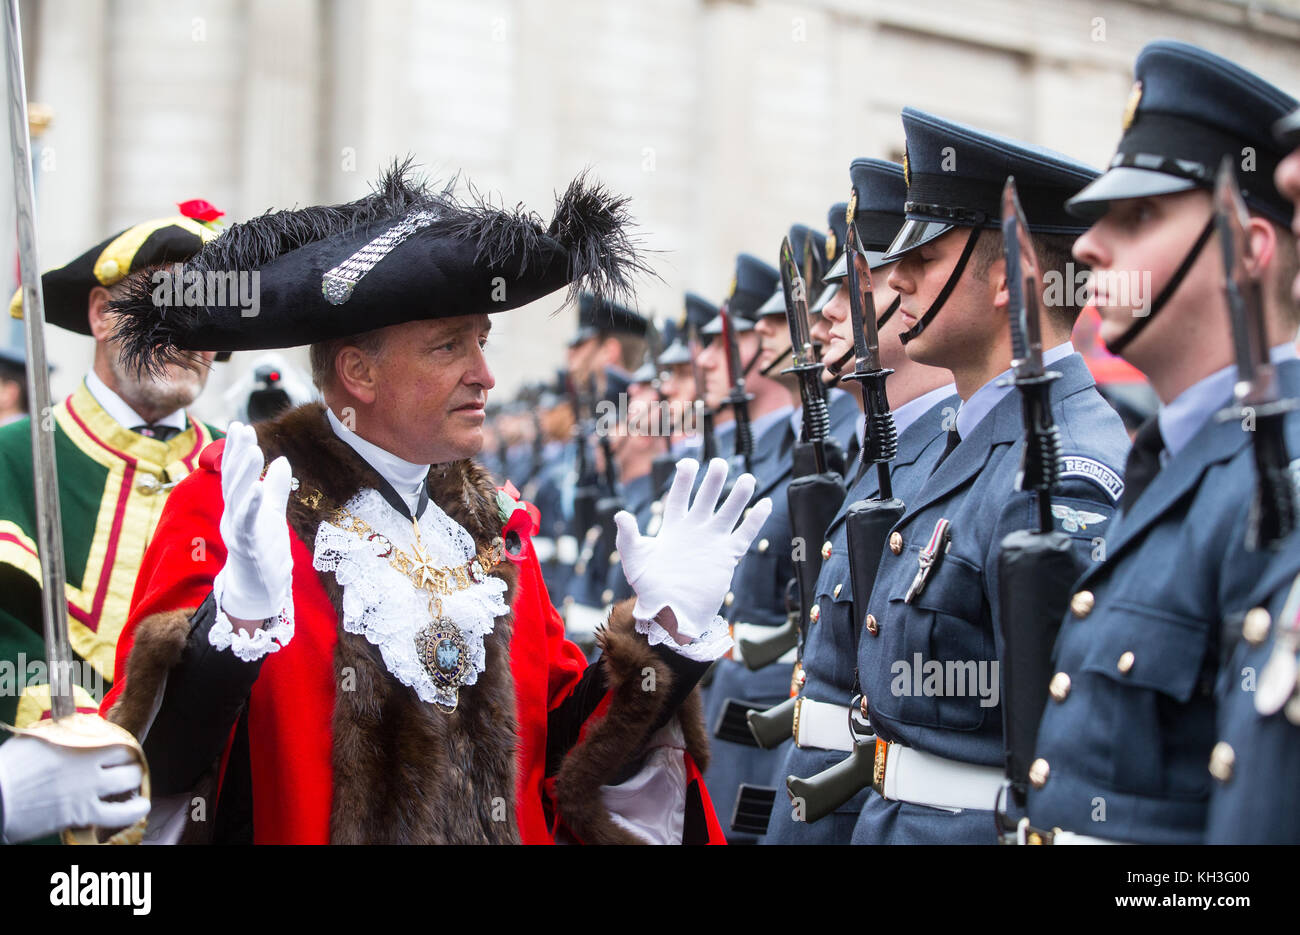 The new Lord Mayor, Charles Bowman, inspects the troops outside the Mansion House in his inaugural ceremony in the - Stock Image